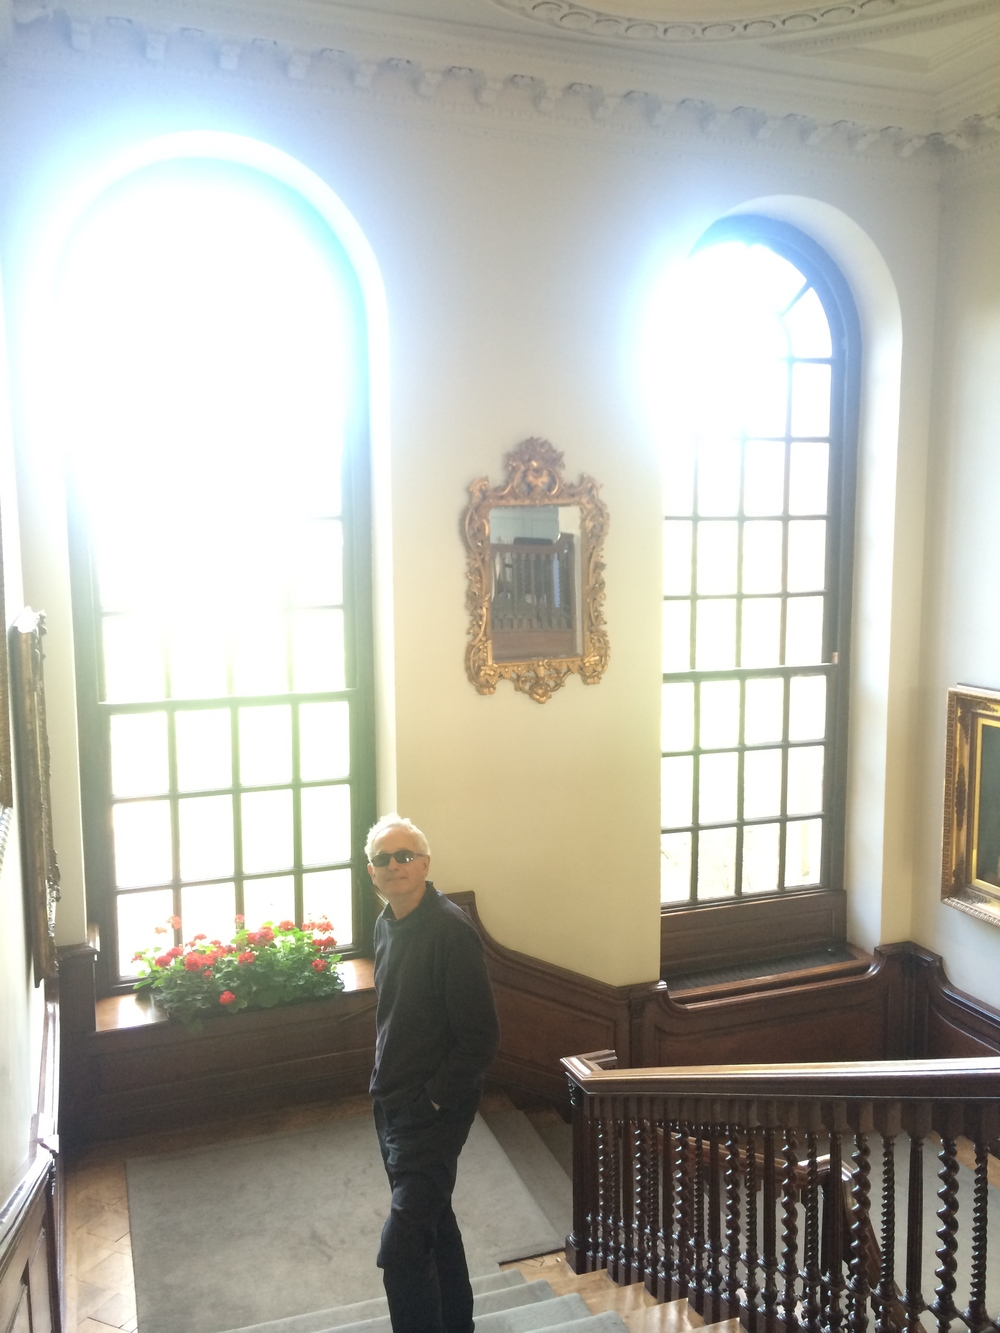 My Dad standing on the staircase inside the main building.